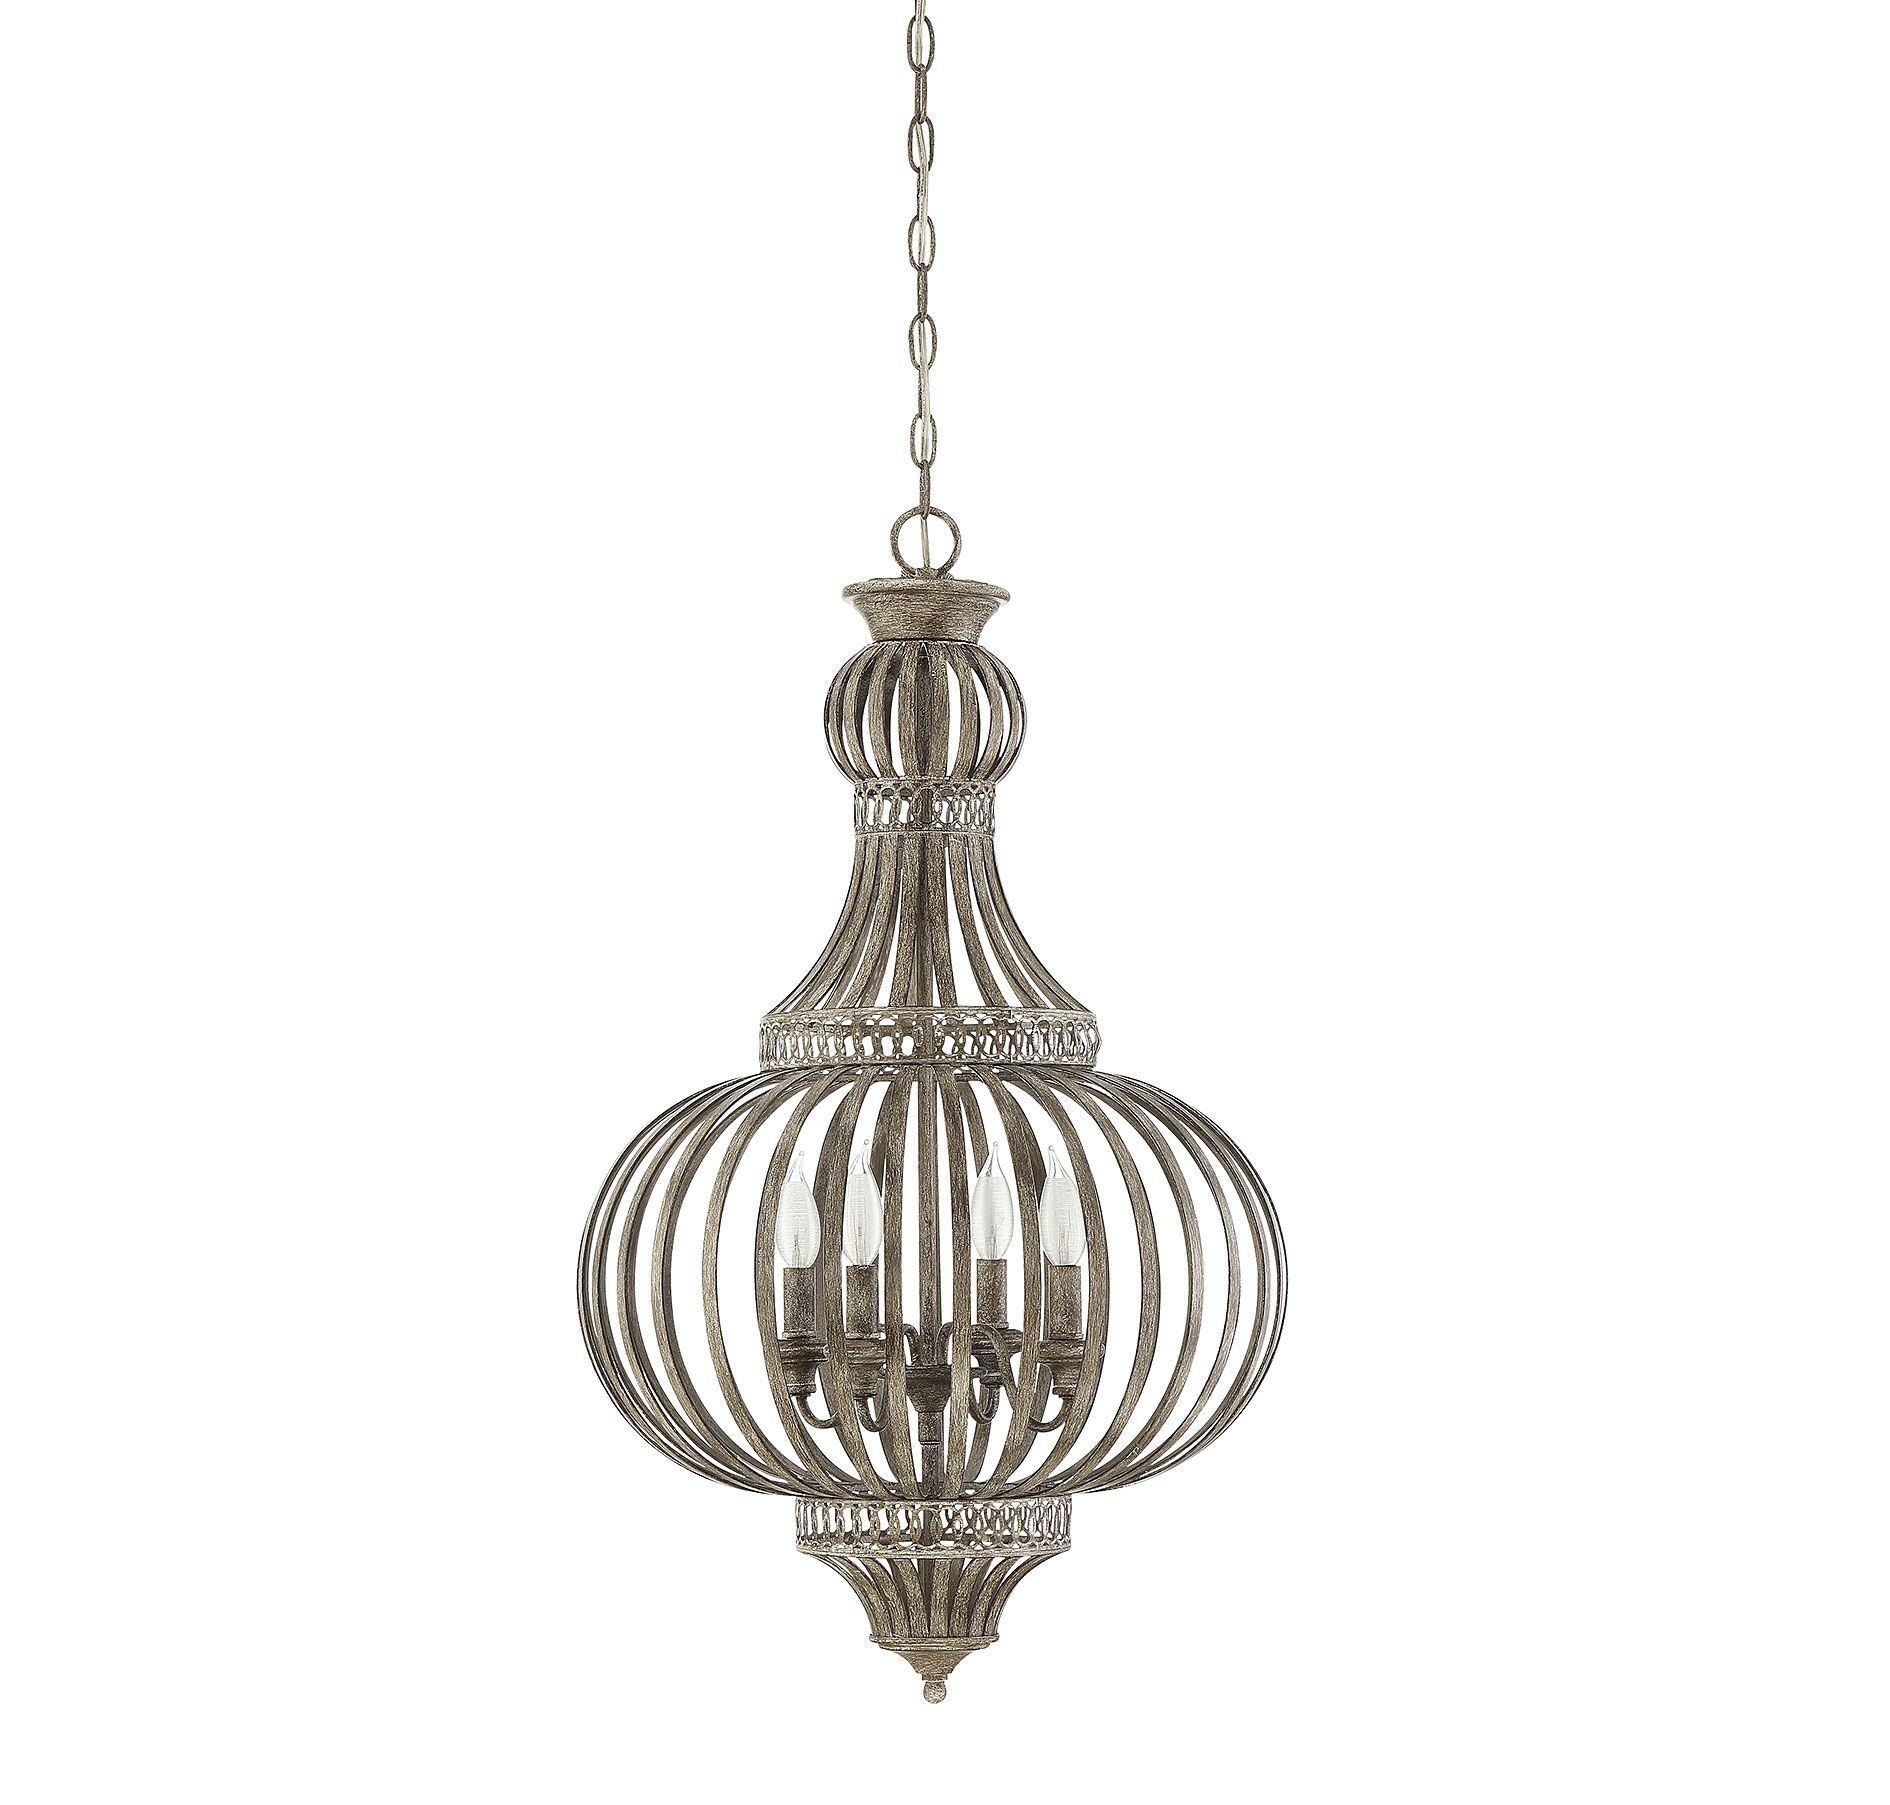 Botsford 4-Light Globe Chandelier